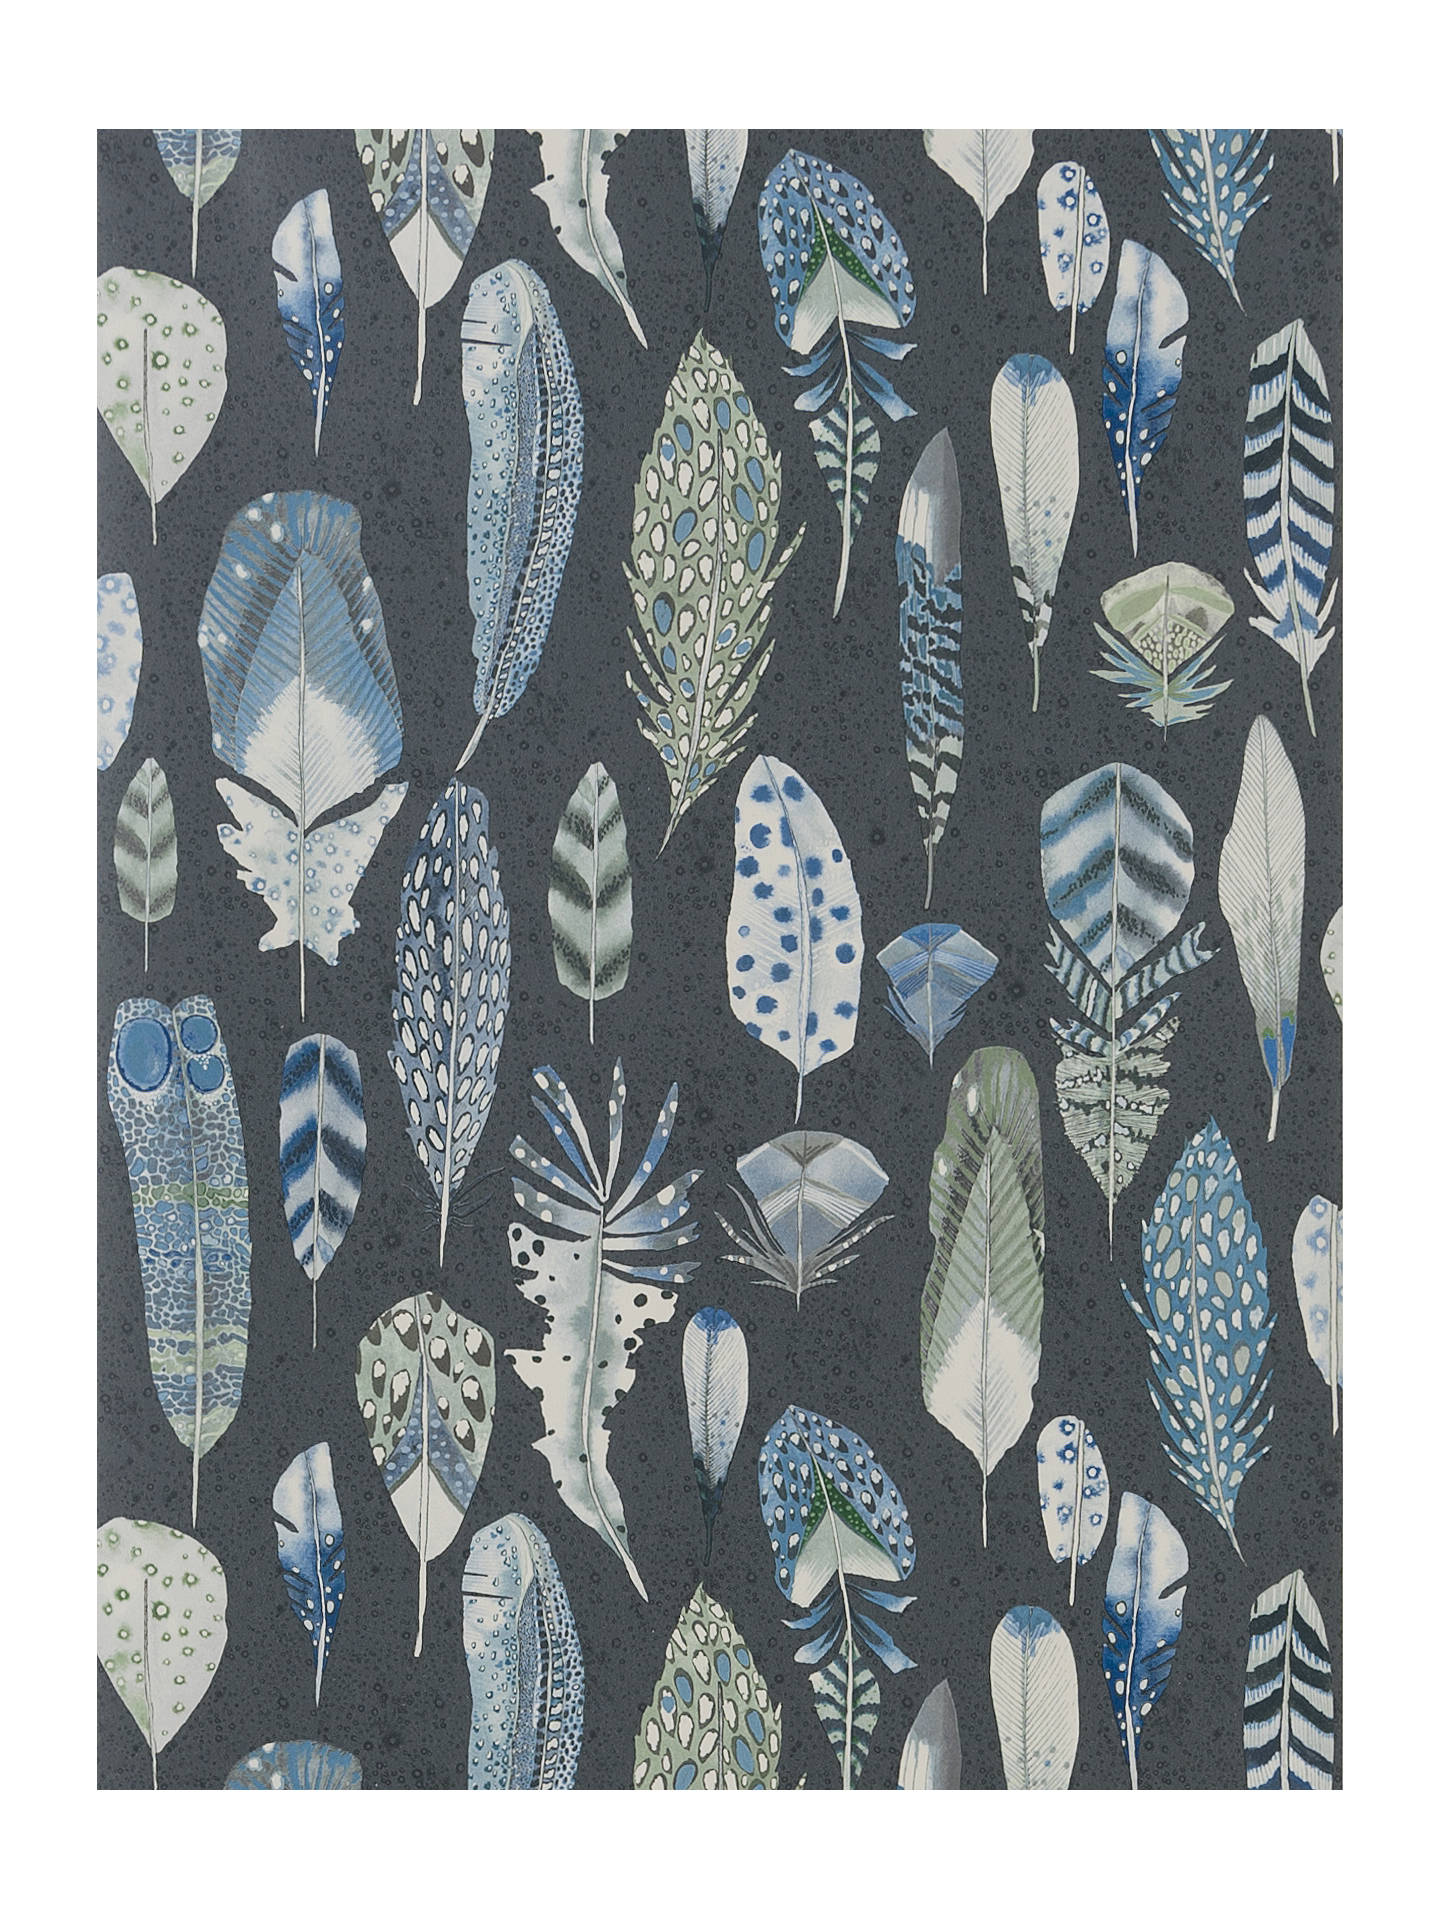 Calendar Wallpaper Quill : Designers guild quill wallpaper at john lewis partners